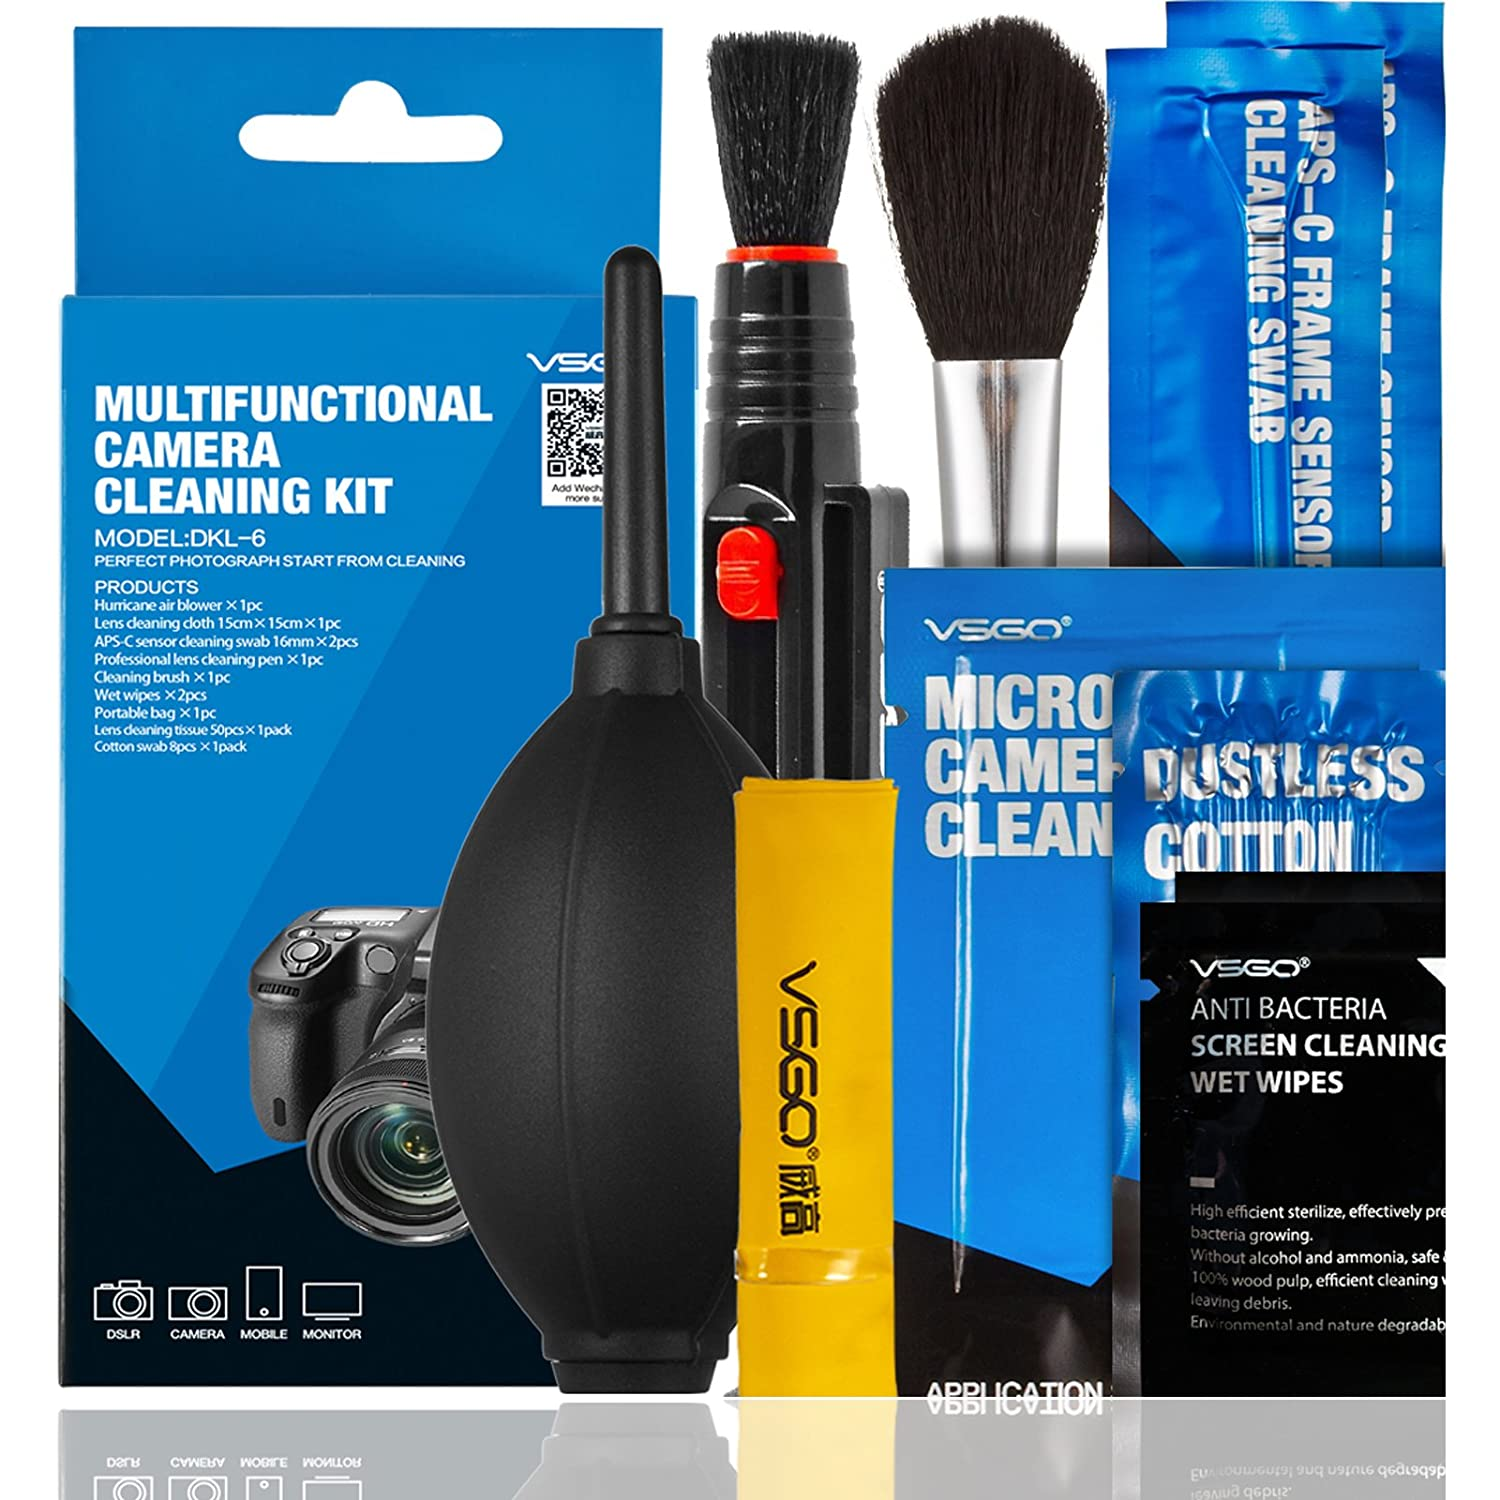 VSGO DSLR or SLR Digital Camera Cleaning Kit (Kit contains Air Blower, Lens Cleaning Cloth, APS-C Sensor Cleaning Swab, Professional Lens Cleaning Pen, Cleaning Brush, Wet Wipes, Portable Bag, Lens Cleaning Tissue, Cotton Swabs), Blue/black (DKL-6)